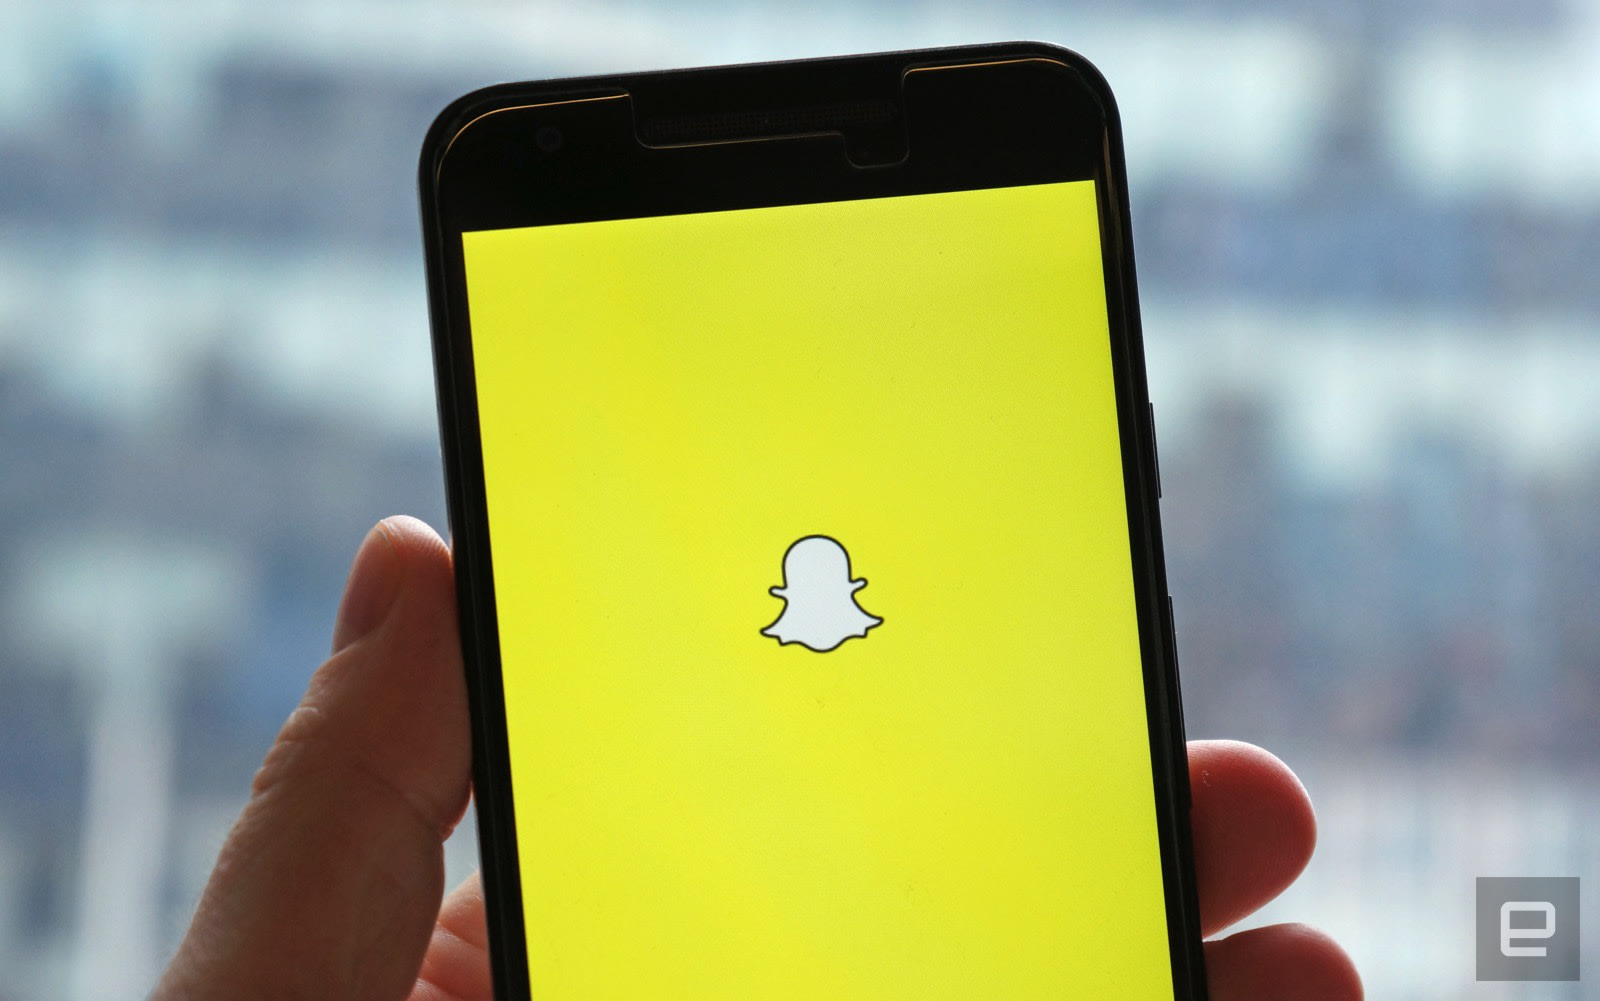 Snapchat's content feed could go algorithmic